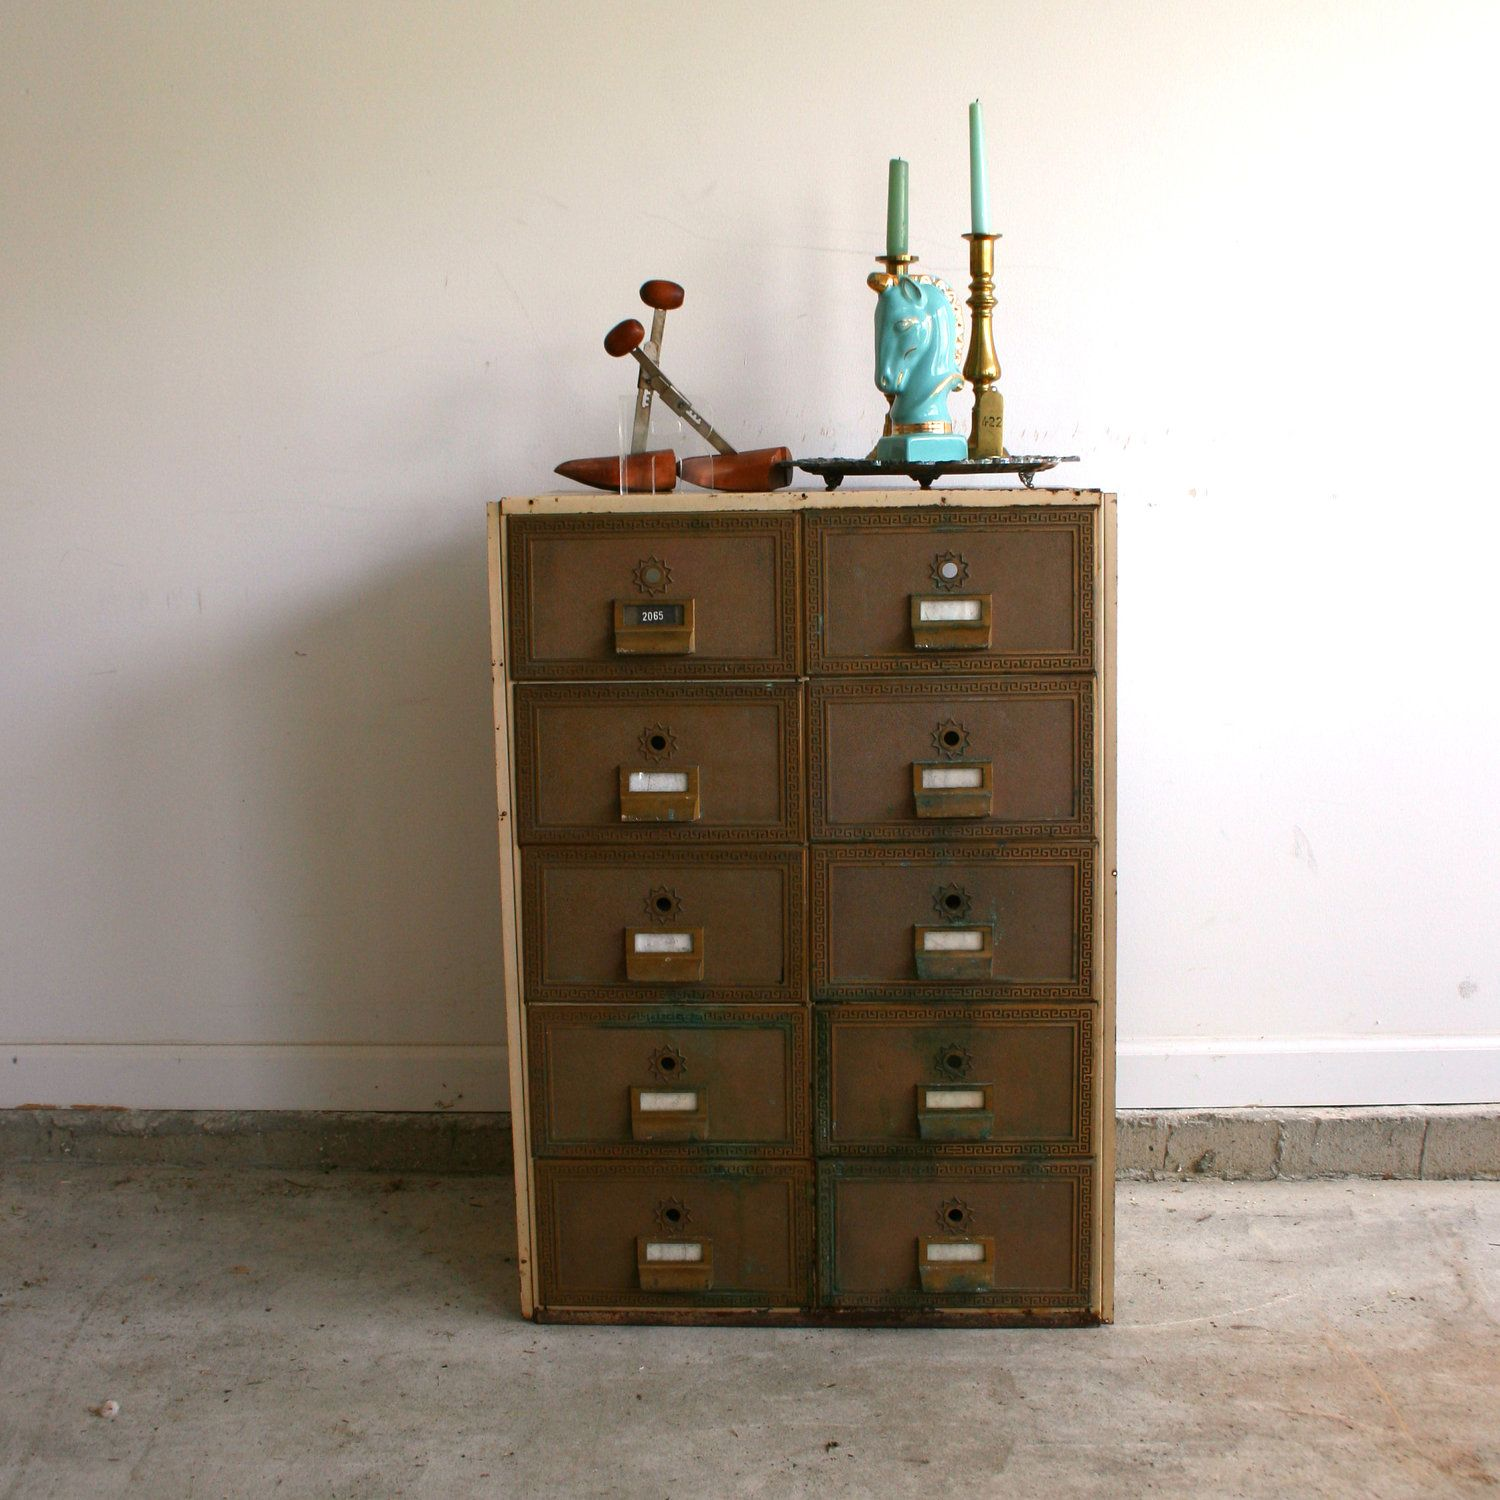 There is a dressing table mirror and lockers and drawersgalore - Industrial Side Table Mailbox File Cabinet Post Office Drawers Mail Box Storage Unit